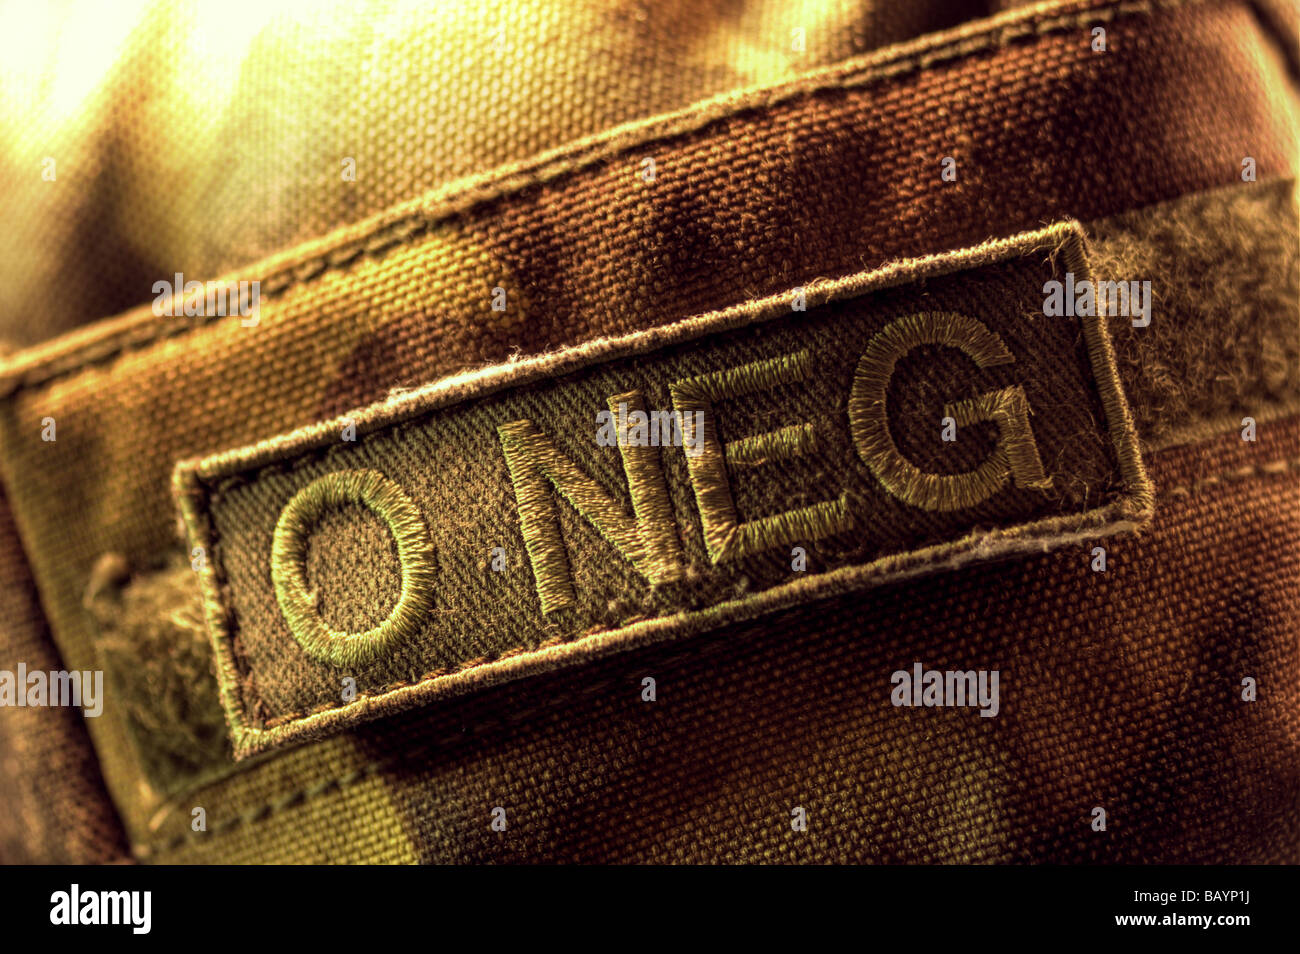 Blood type velcro patch on army uniform - Stock Image